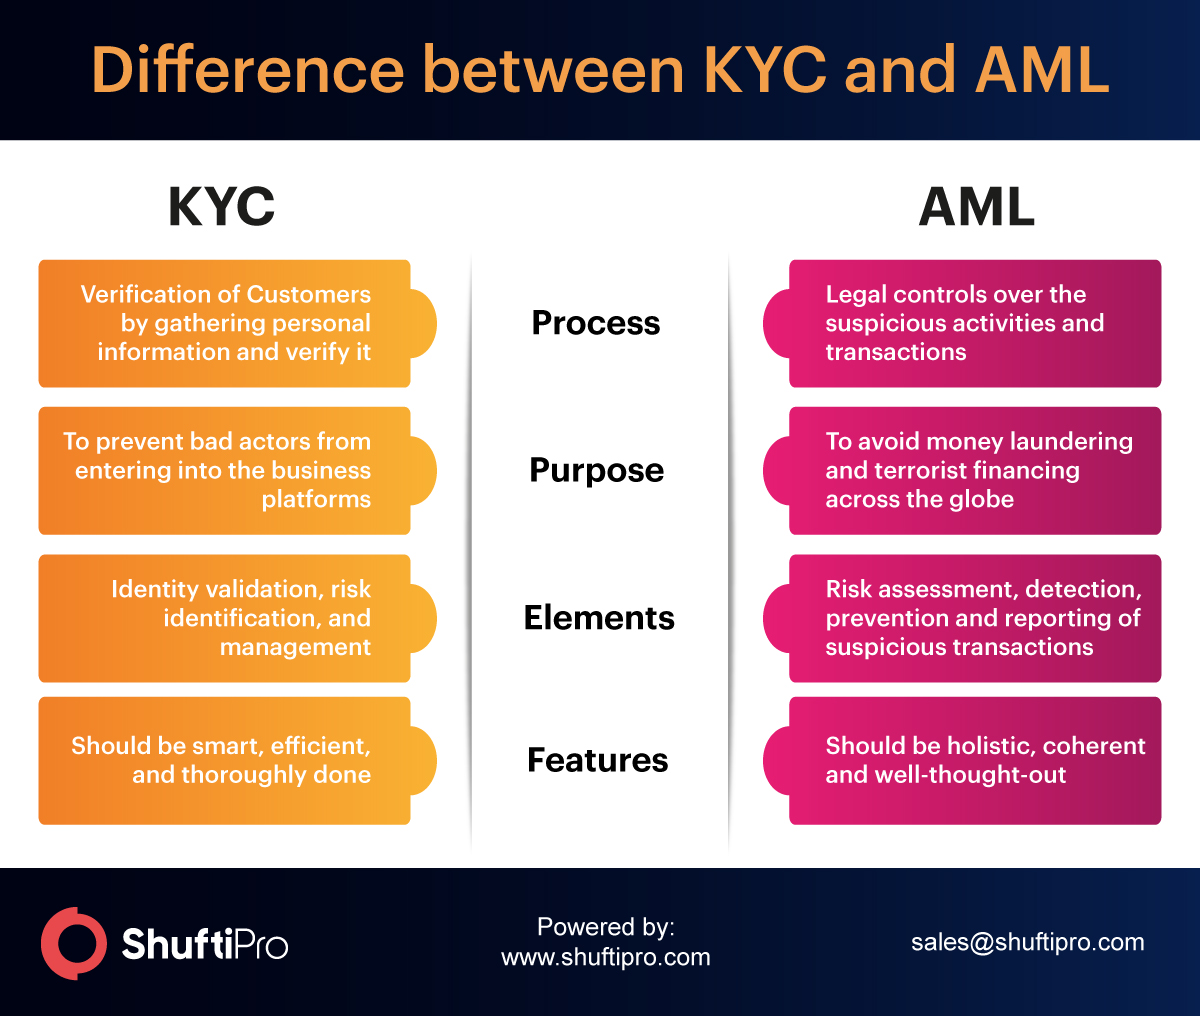 Elaboration: Difference between KYC and AML